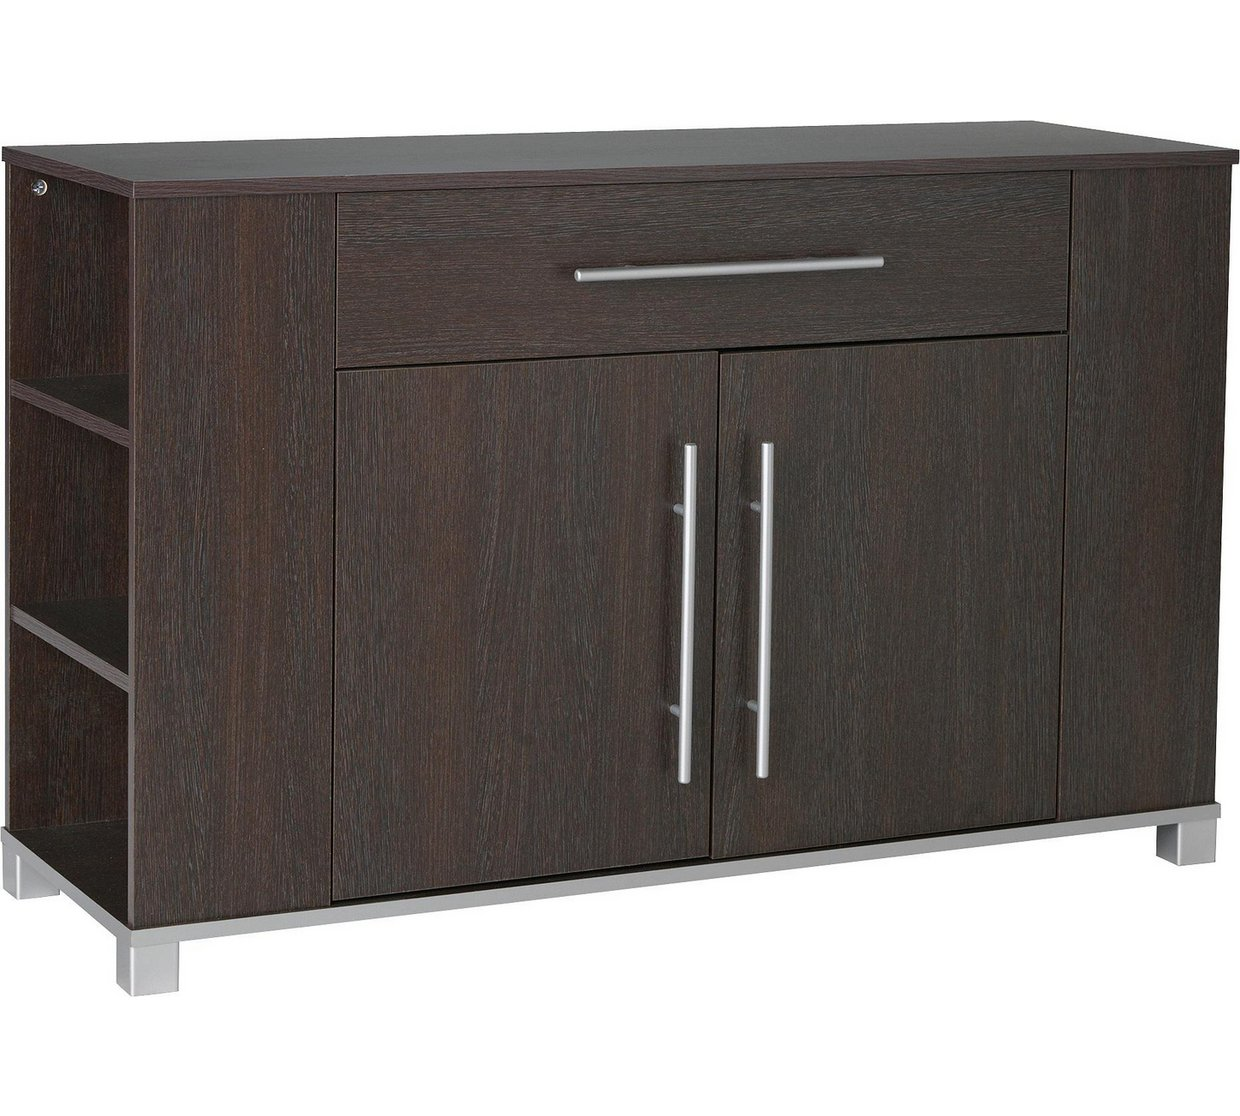 Marlow 2 door 1 drawer sideboard wenge online furniture wholesaler - Sideboard wenge ...